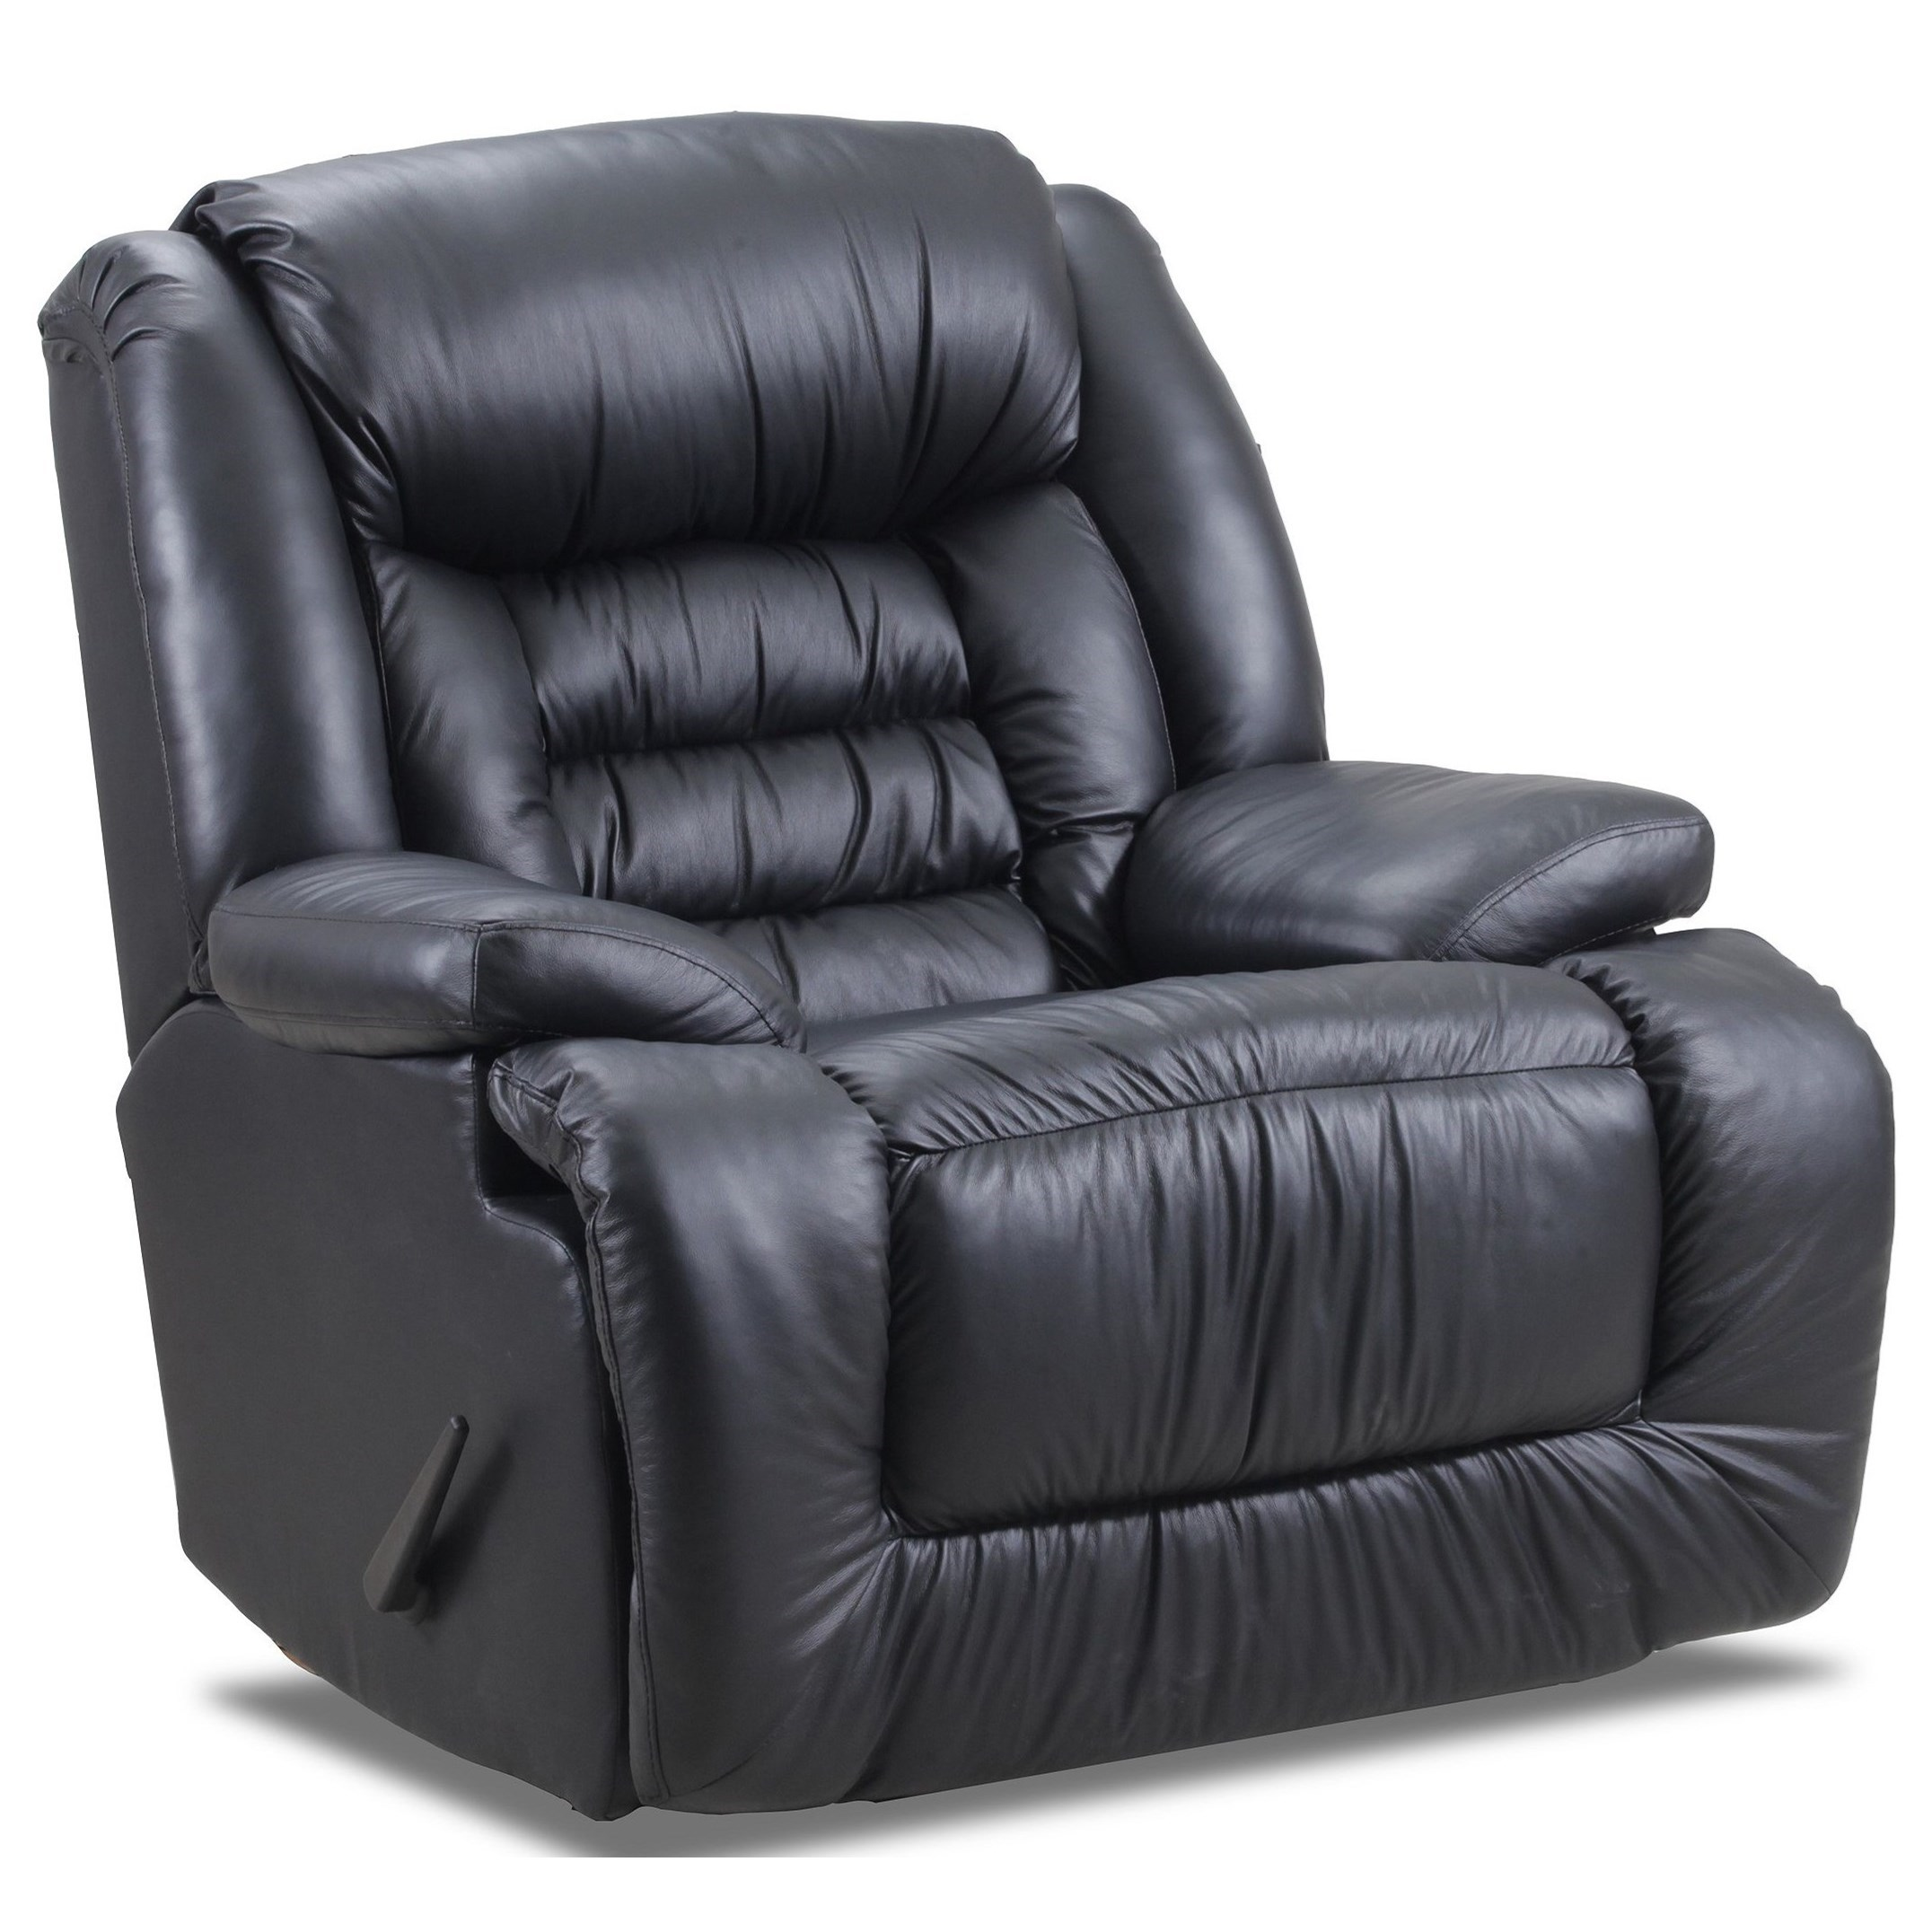 Lane Victory Comfortking 174 Rocker Recliner With Padded